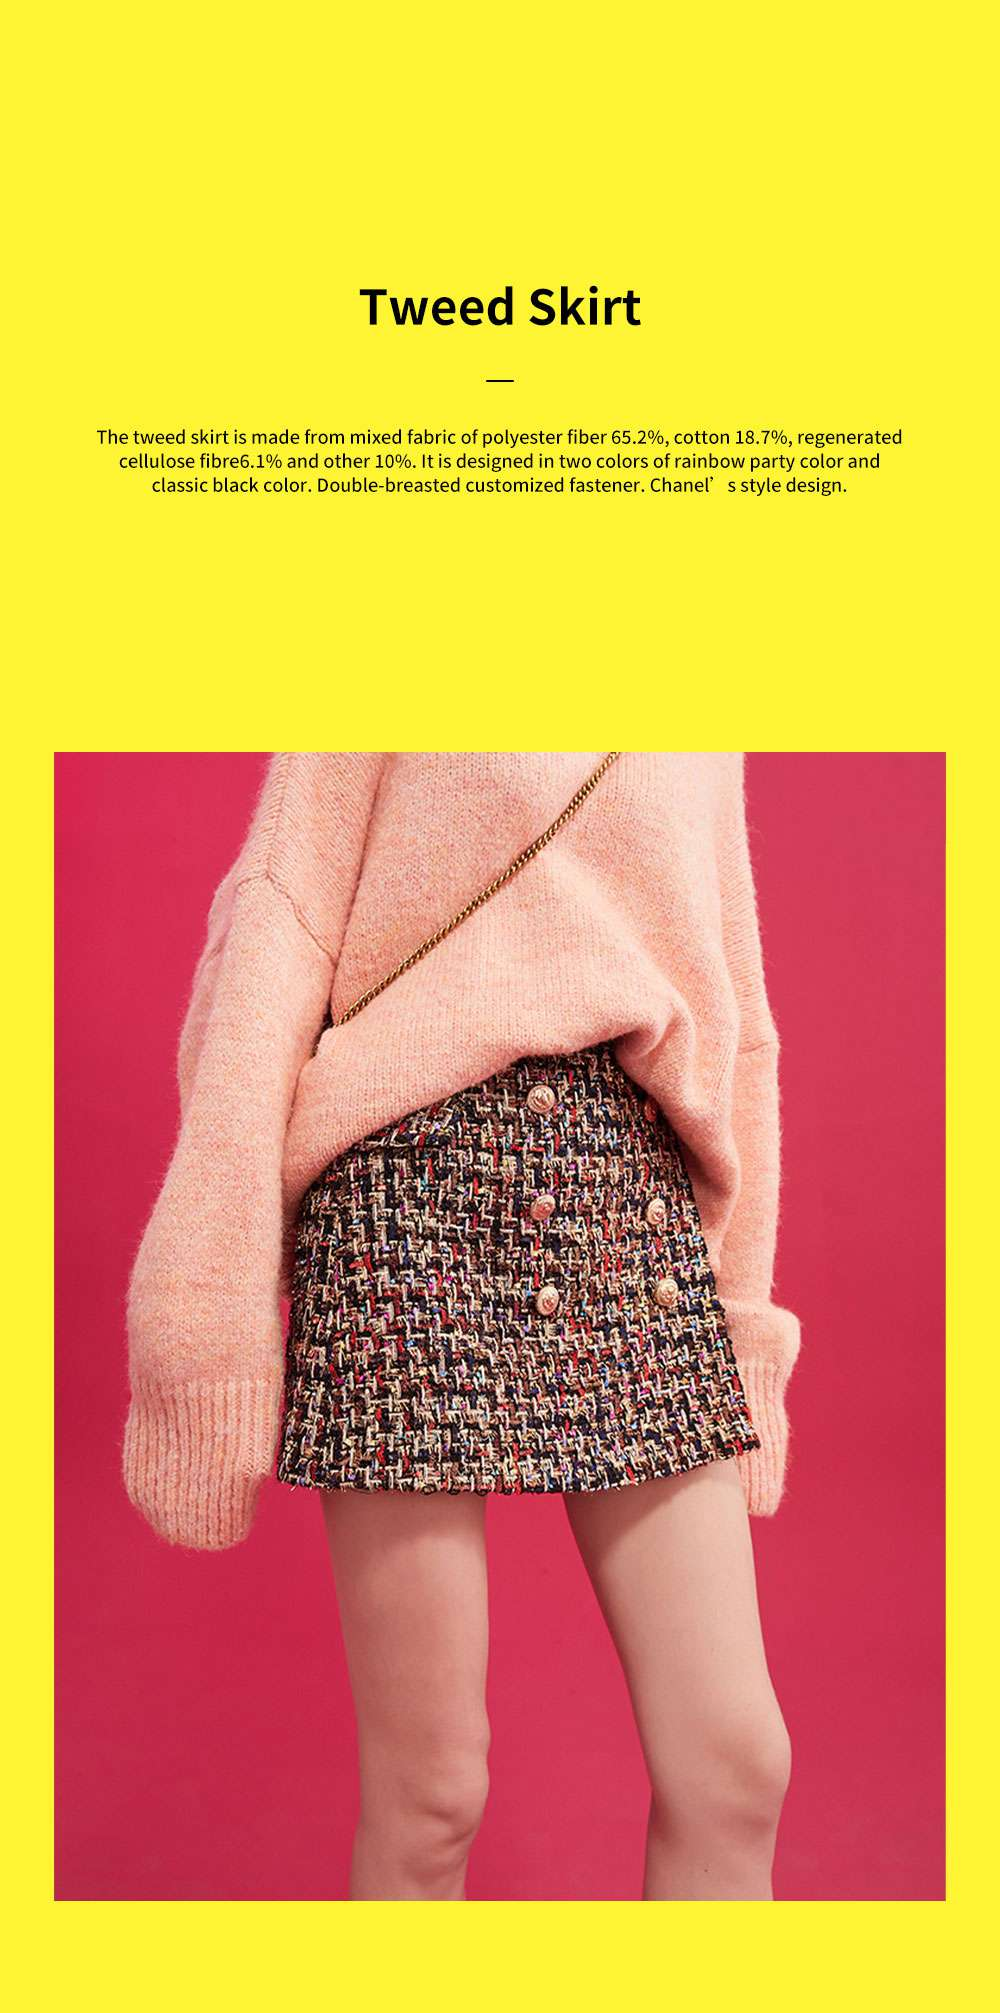 Autumn Winter 2019 New Style Tweed Skirt Chanel's Style Bust Skirt for Lady Wear Fashionable and Unique A-line Skirt 0